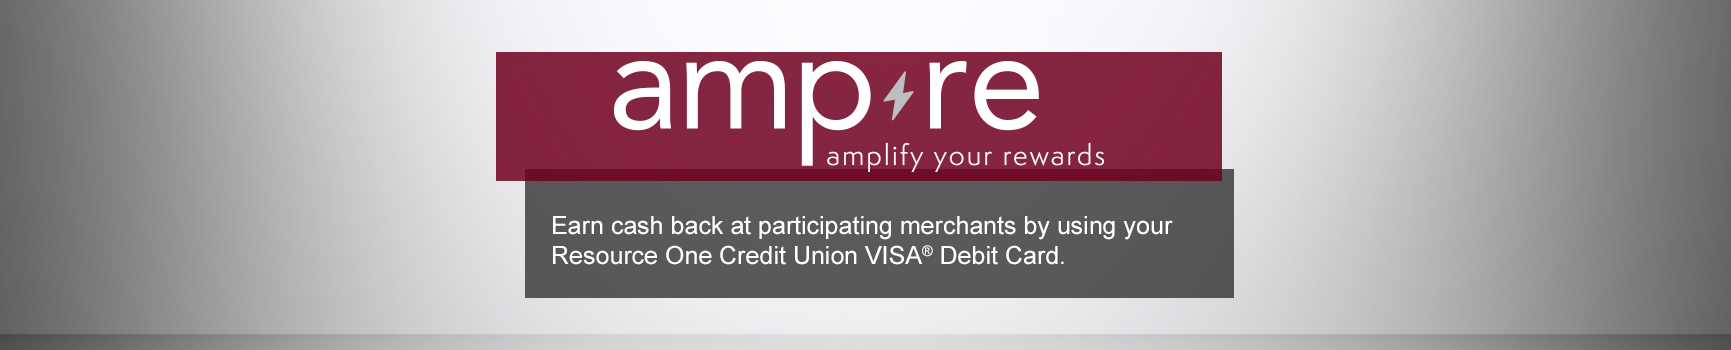 Ampre - Earn cash back rewards at participating merchants using your Resource One debit card.